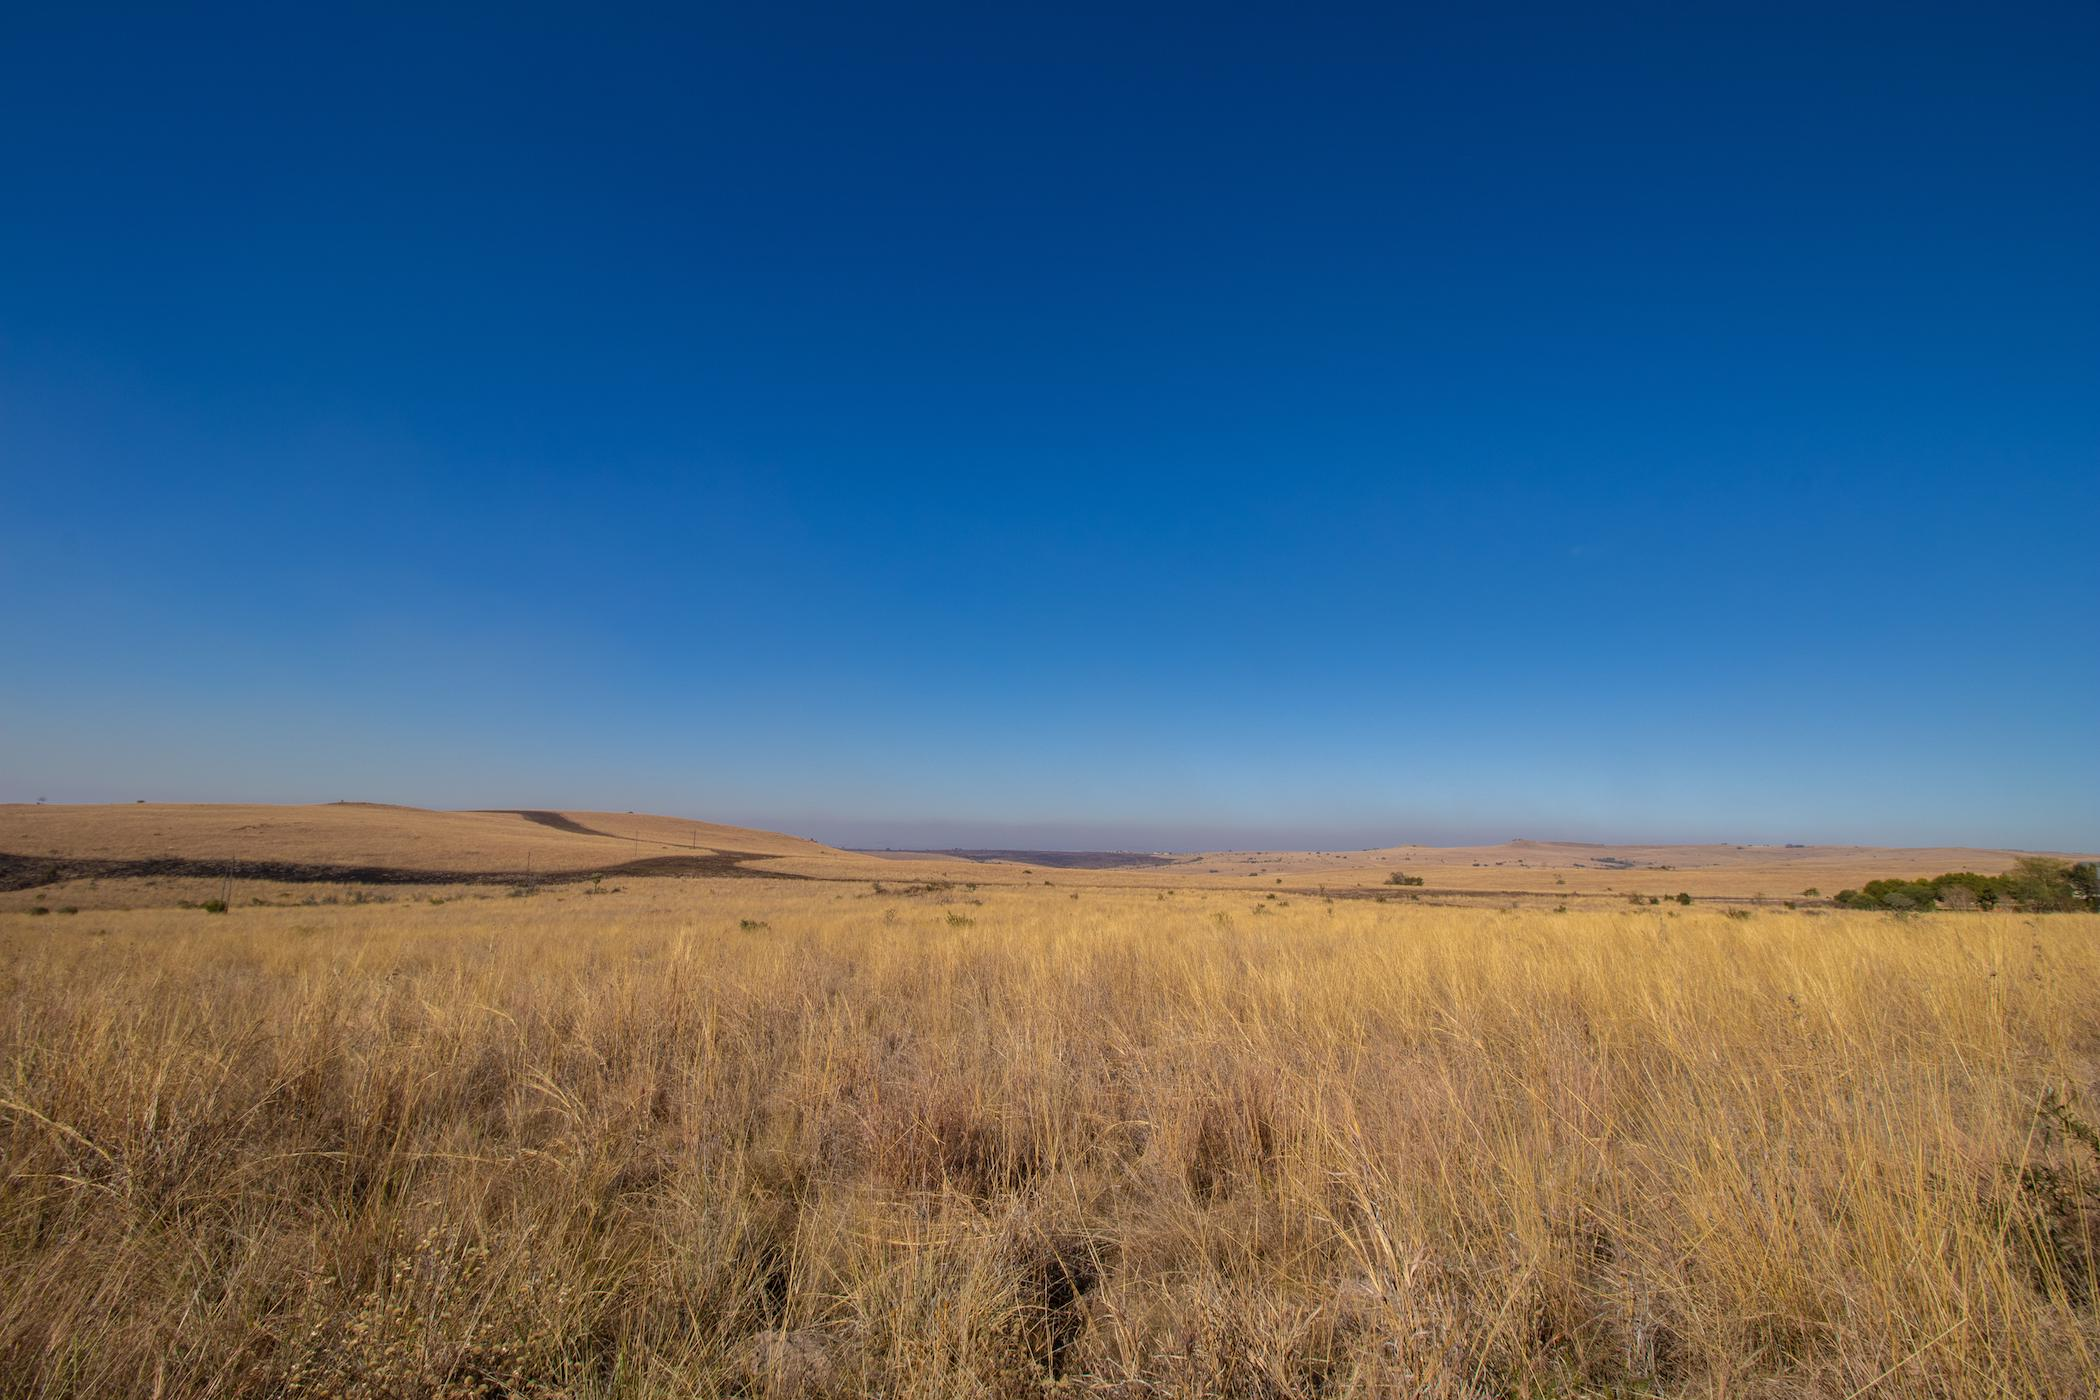 8 hectare farm vacant land for sale in Kalkheuwel